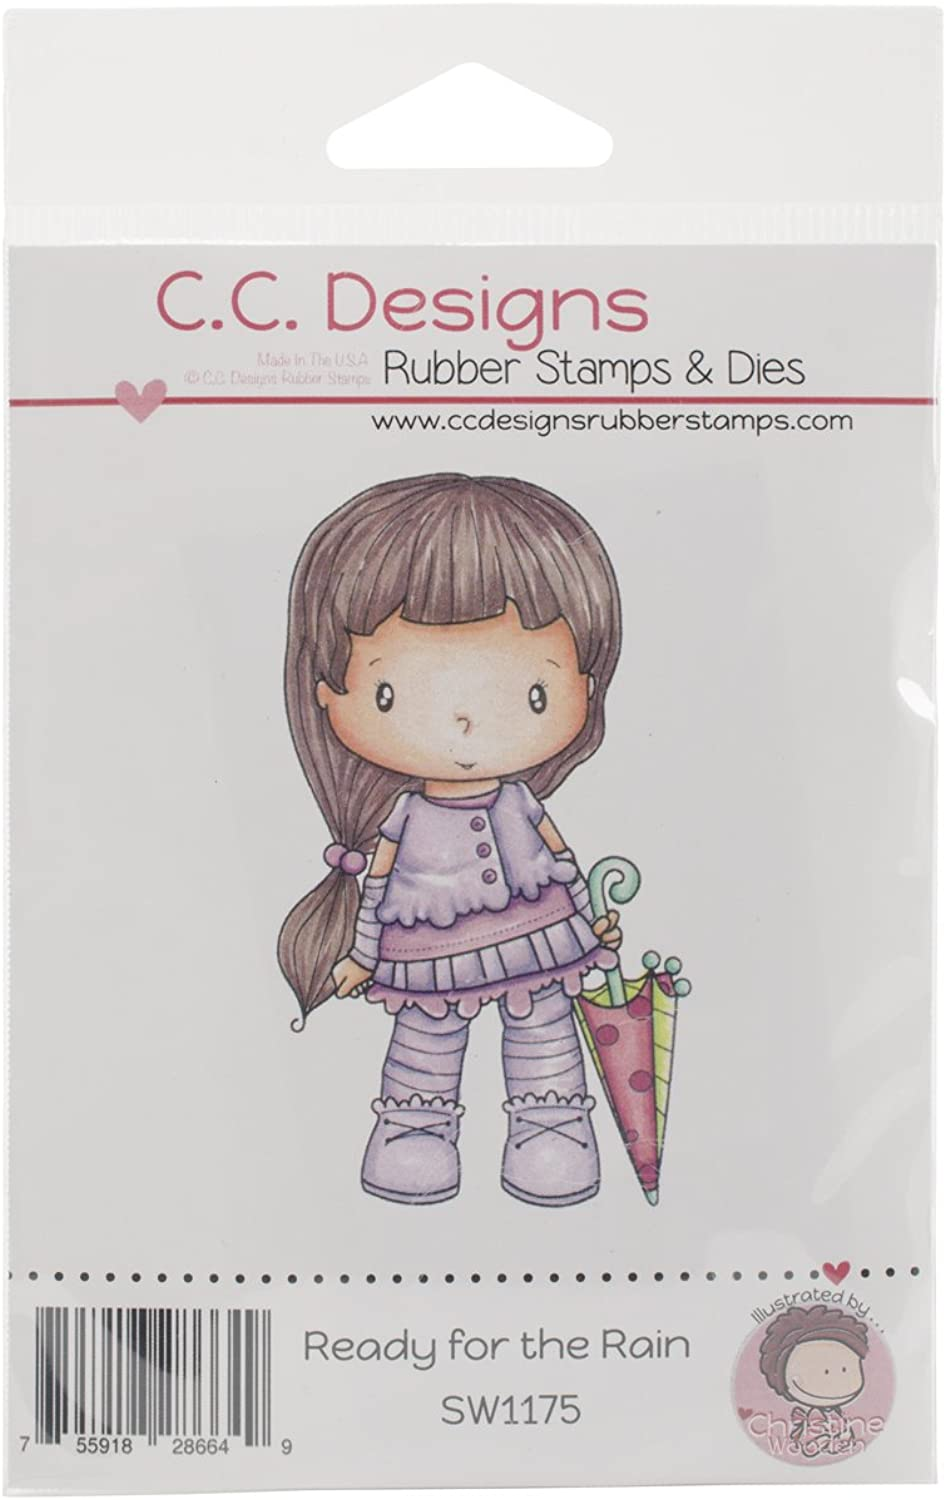 C.C. Designs Swiss Pixie Ready for The Rain Cling Stamp, 3.25 x 2